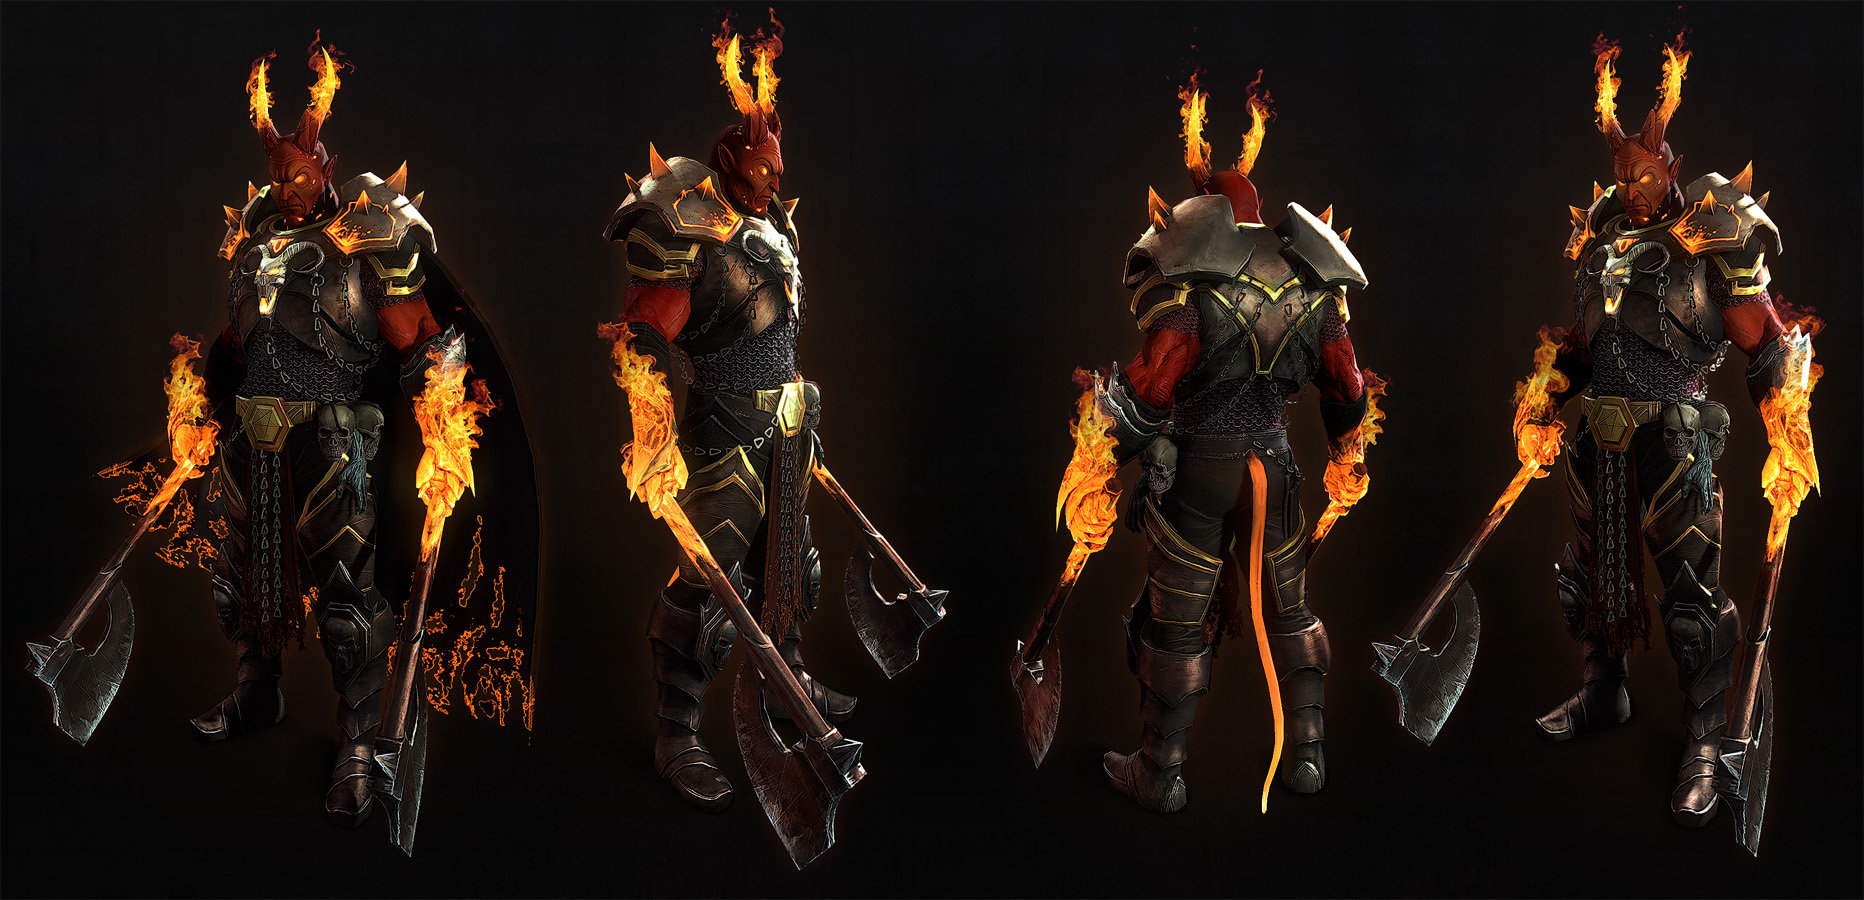 Alexander boluzhenkov demon warrior screen8 fire